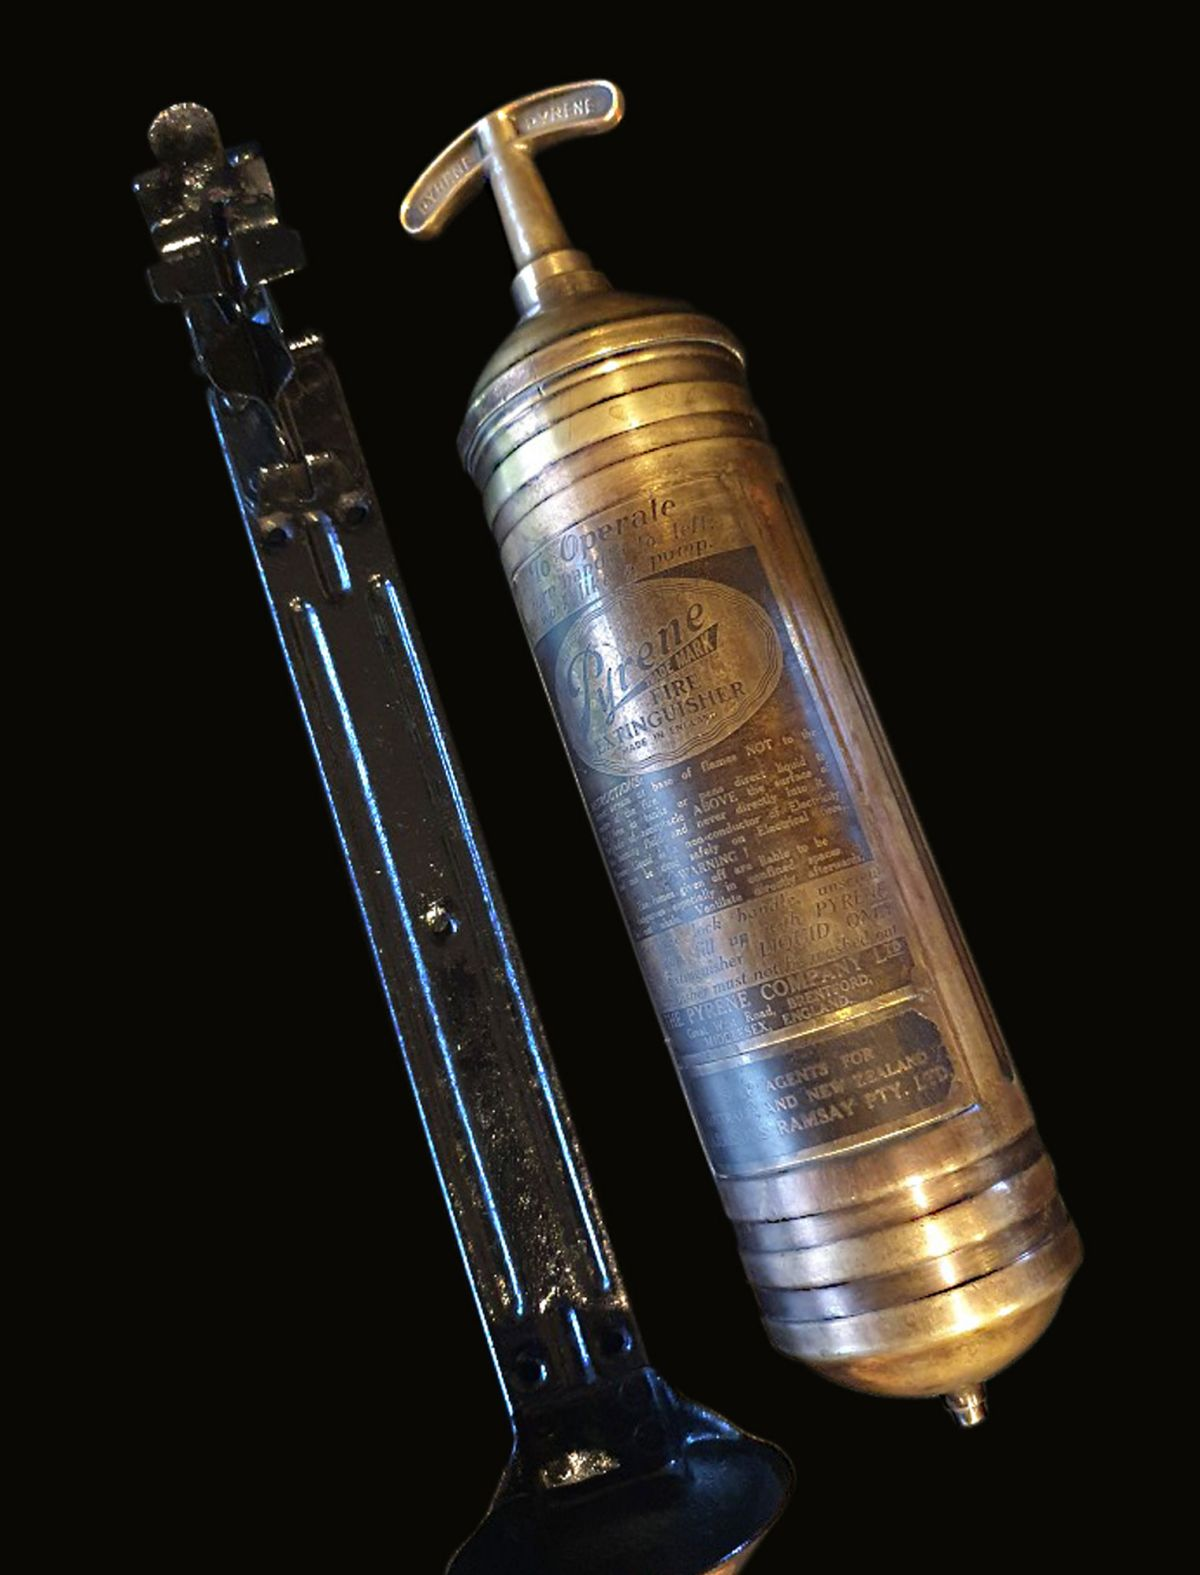 1940s PYRENE PORTABLE FIRE EXTINGUISHER WITH BULKHEAD BRACKET INSTALLED ABOARD THE AVRO LANCASTER